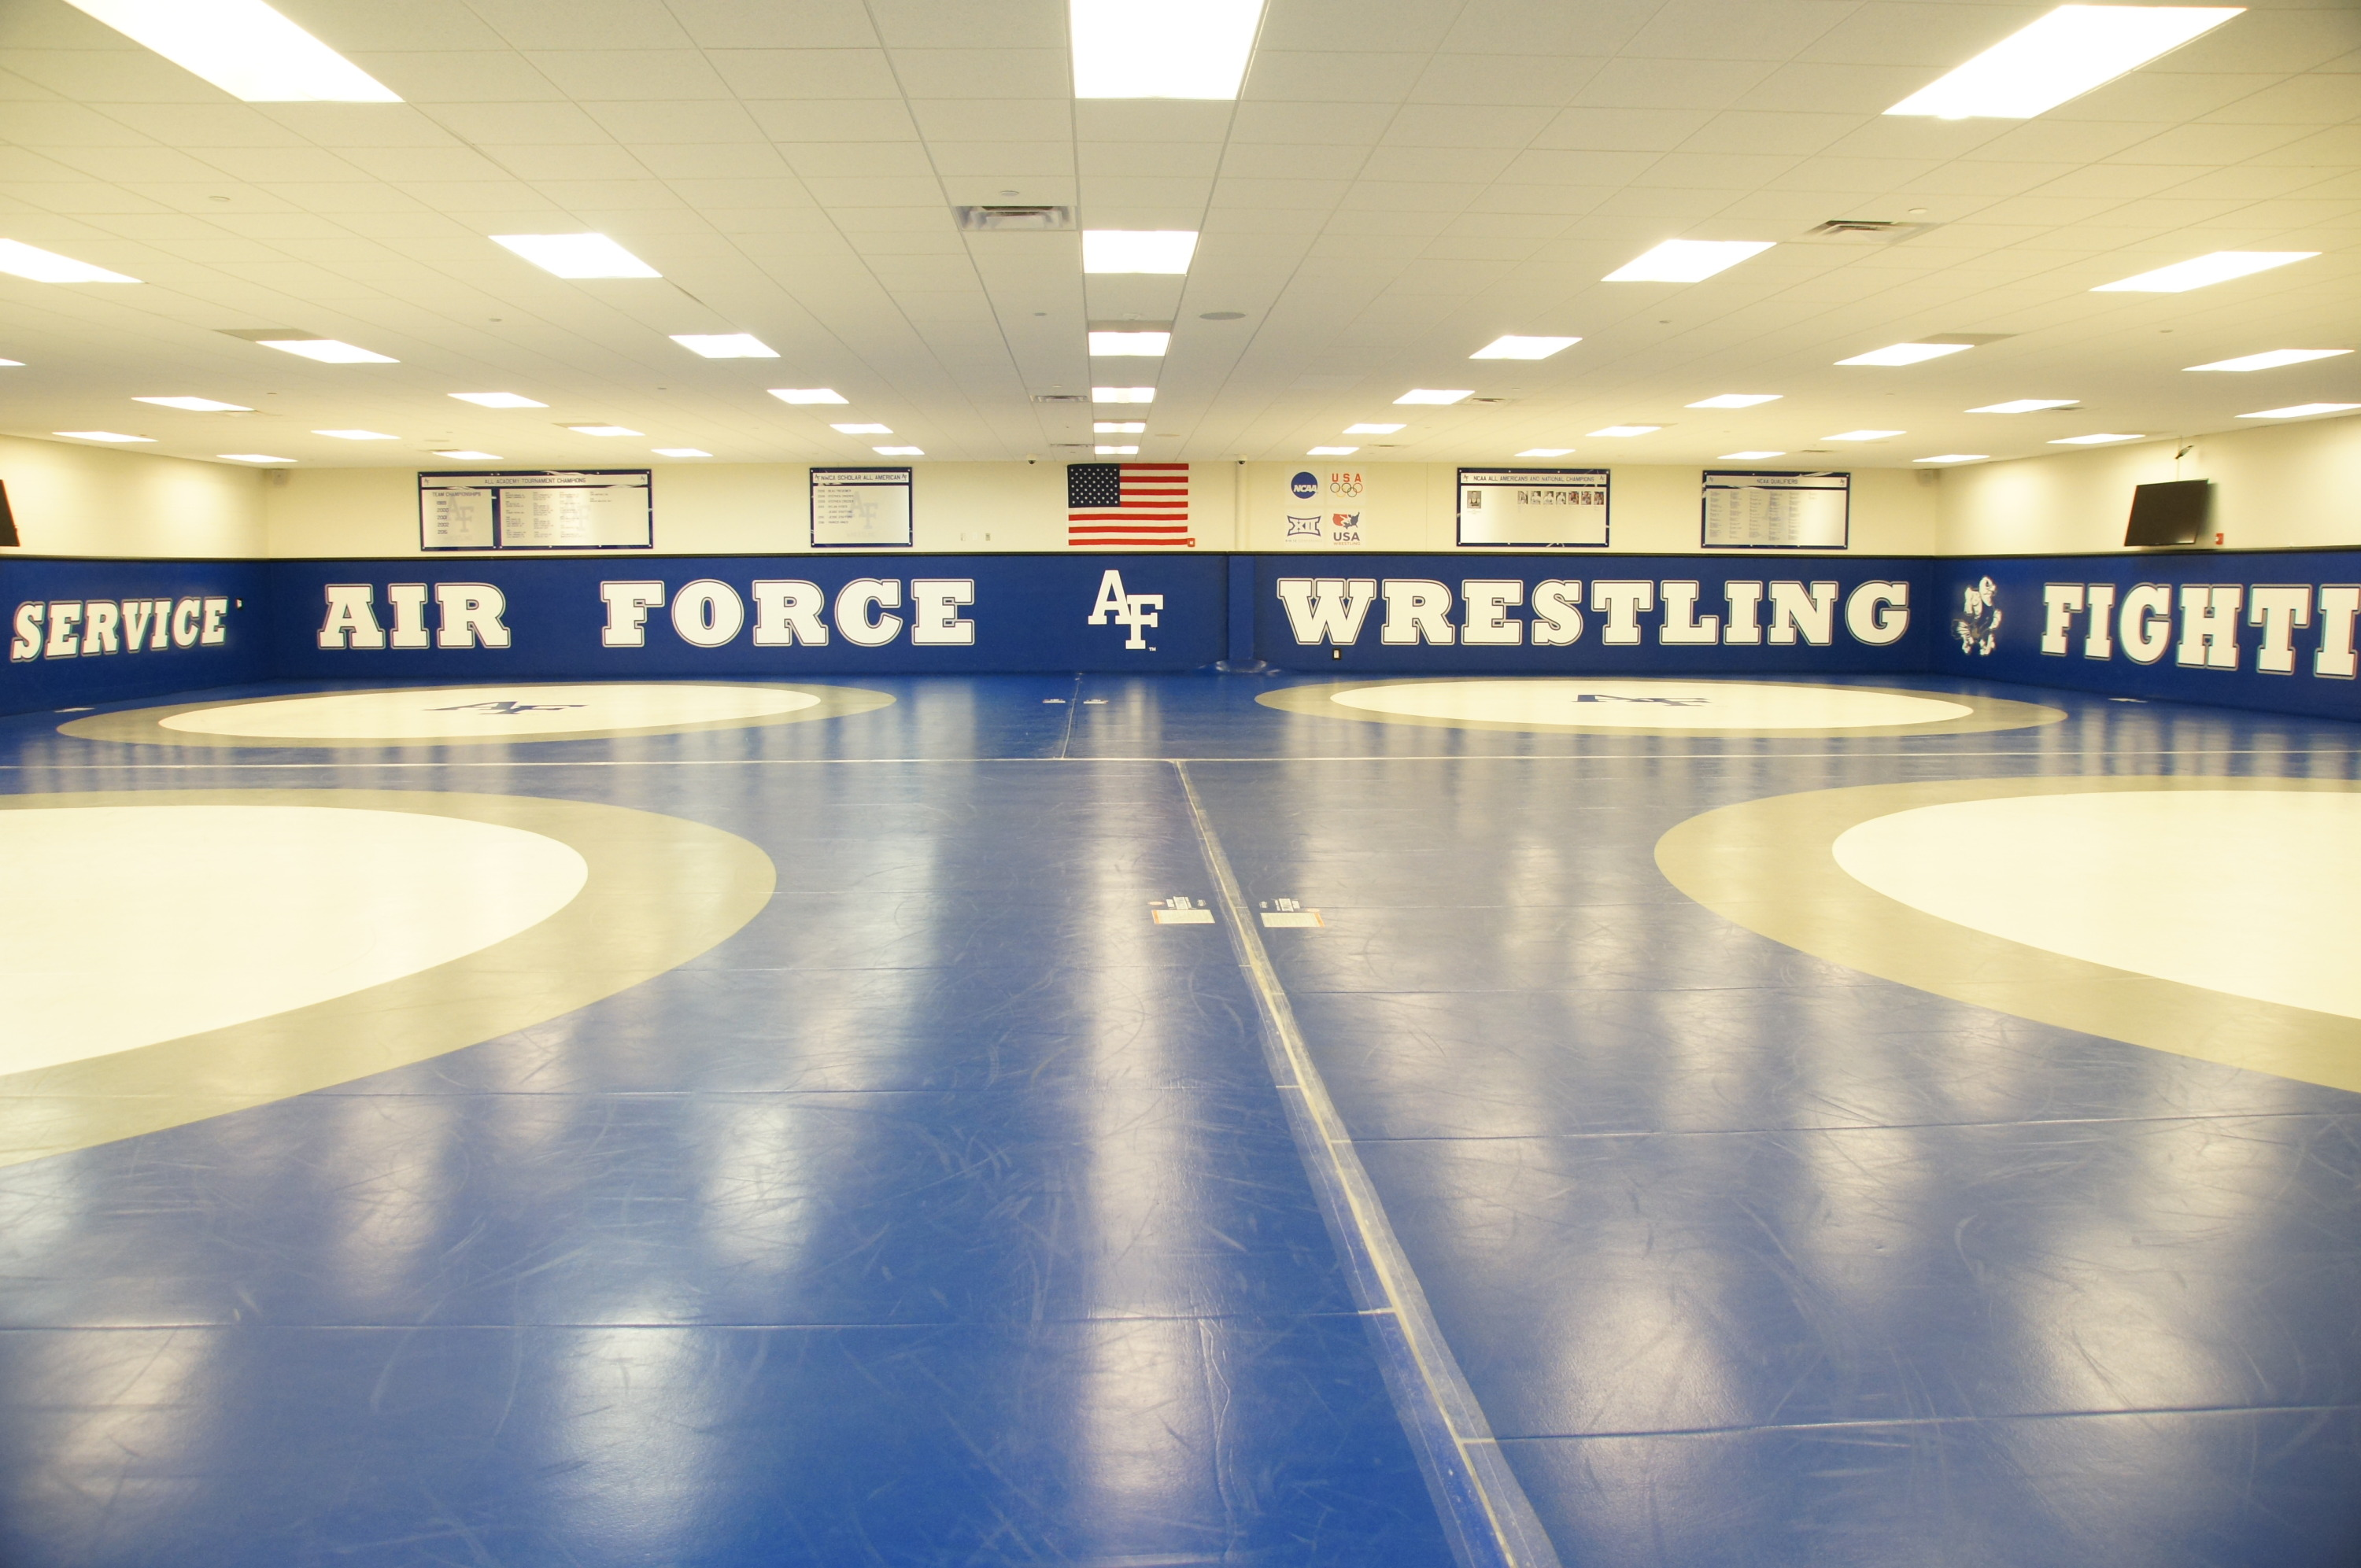 Wrestling Announces 2018 19 Schedule Air Force Academy